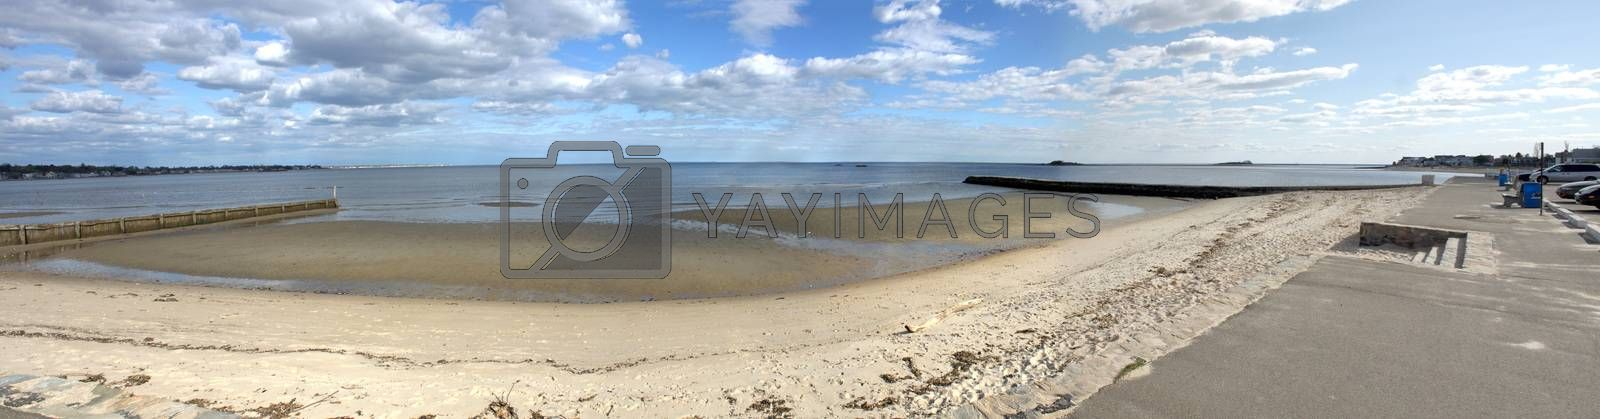 Wide angle panoramic view of a public Connecticut beach during low tide.